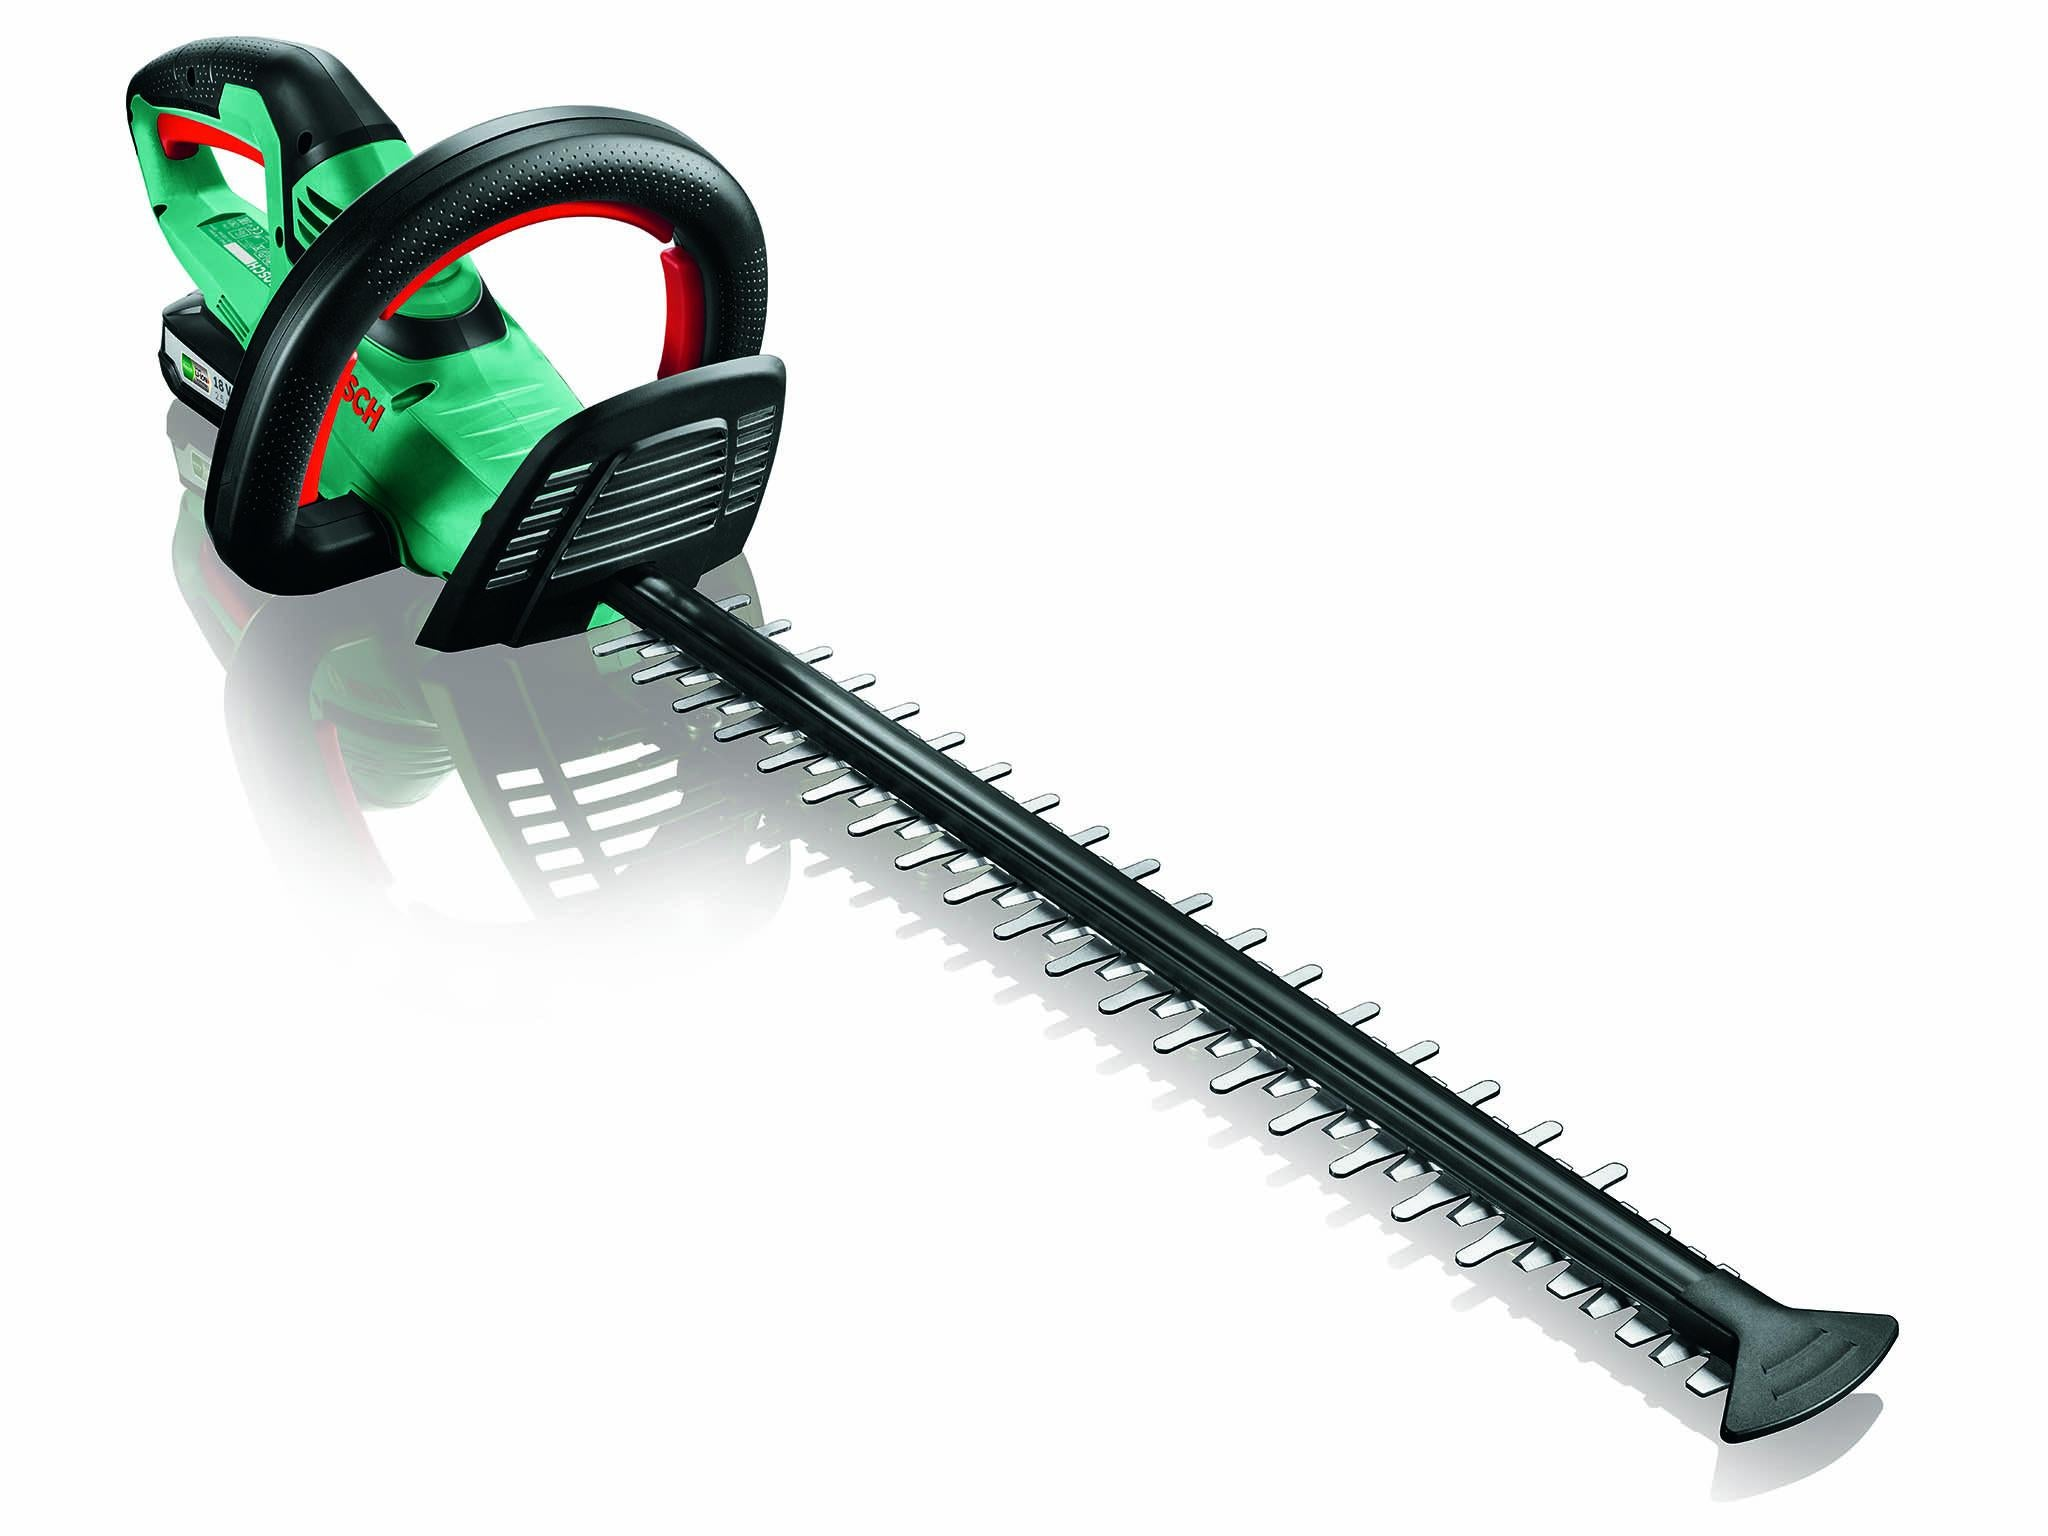 12 best hedge trimmers | The Independent